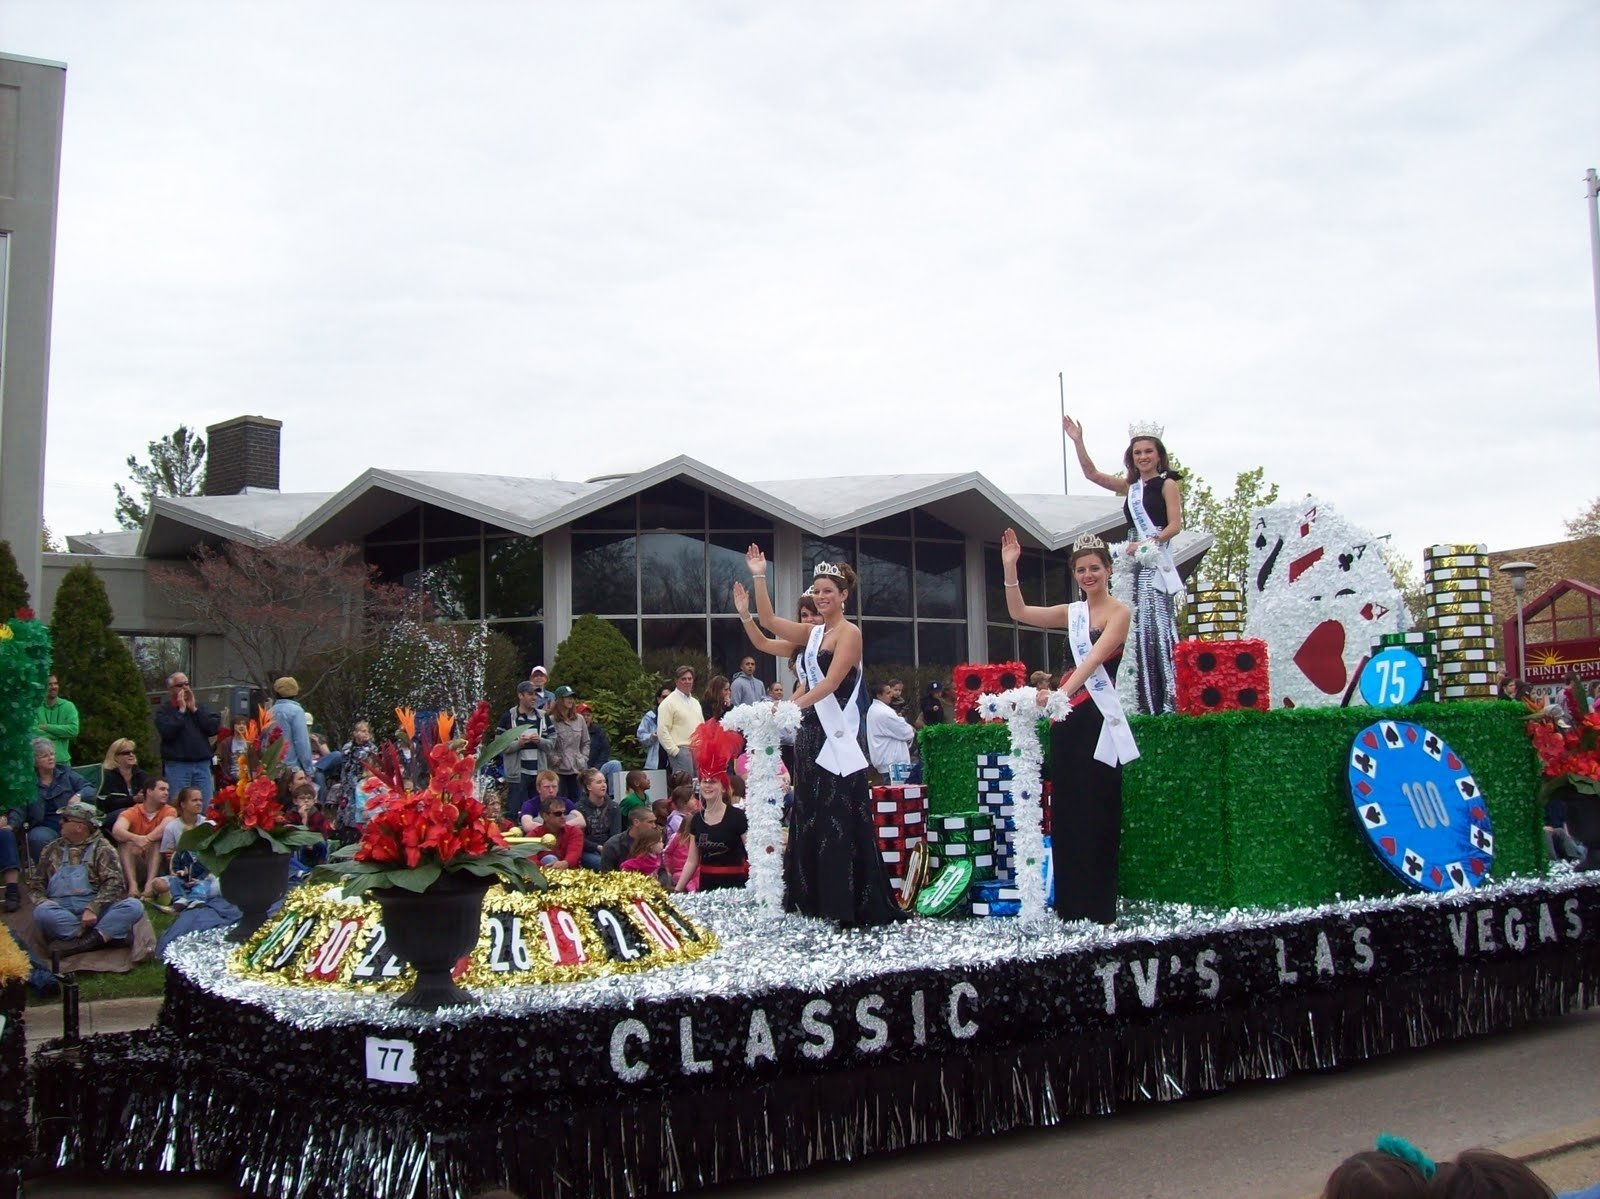 10 Gorgeous High School Homecoming Float Ideas las vegas themed parade floats bridgman high school ap english 2021